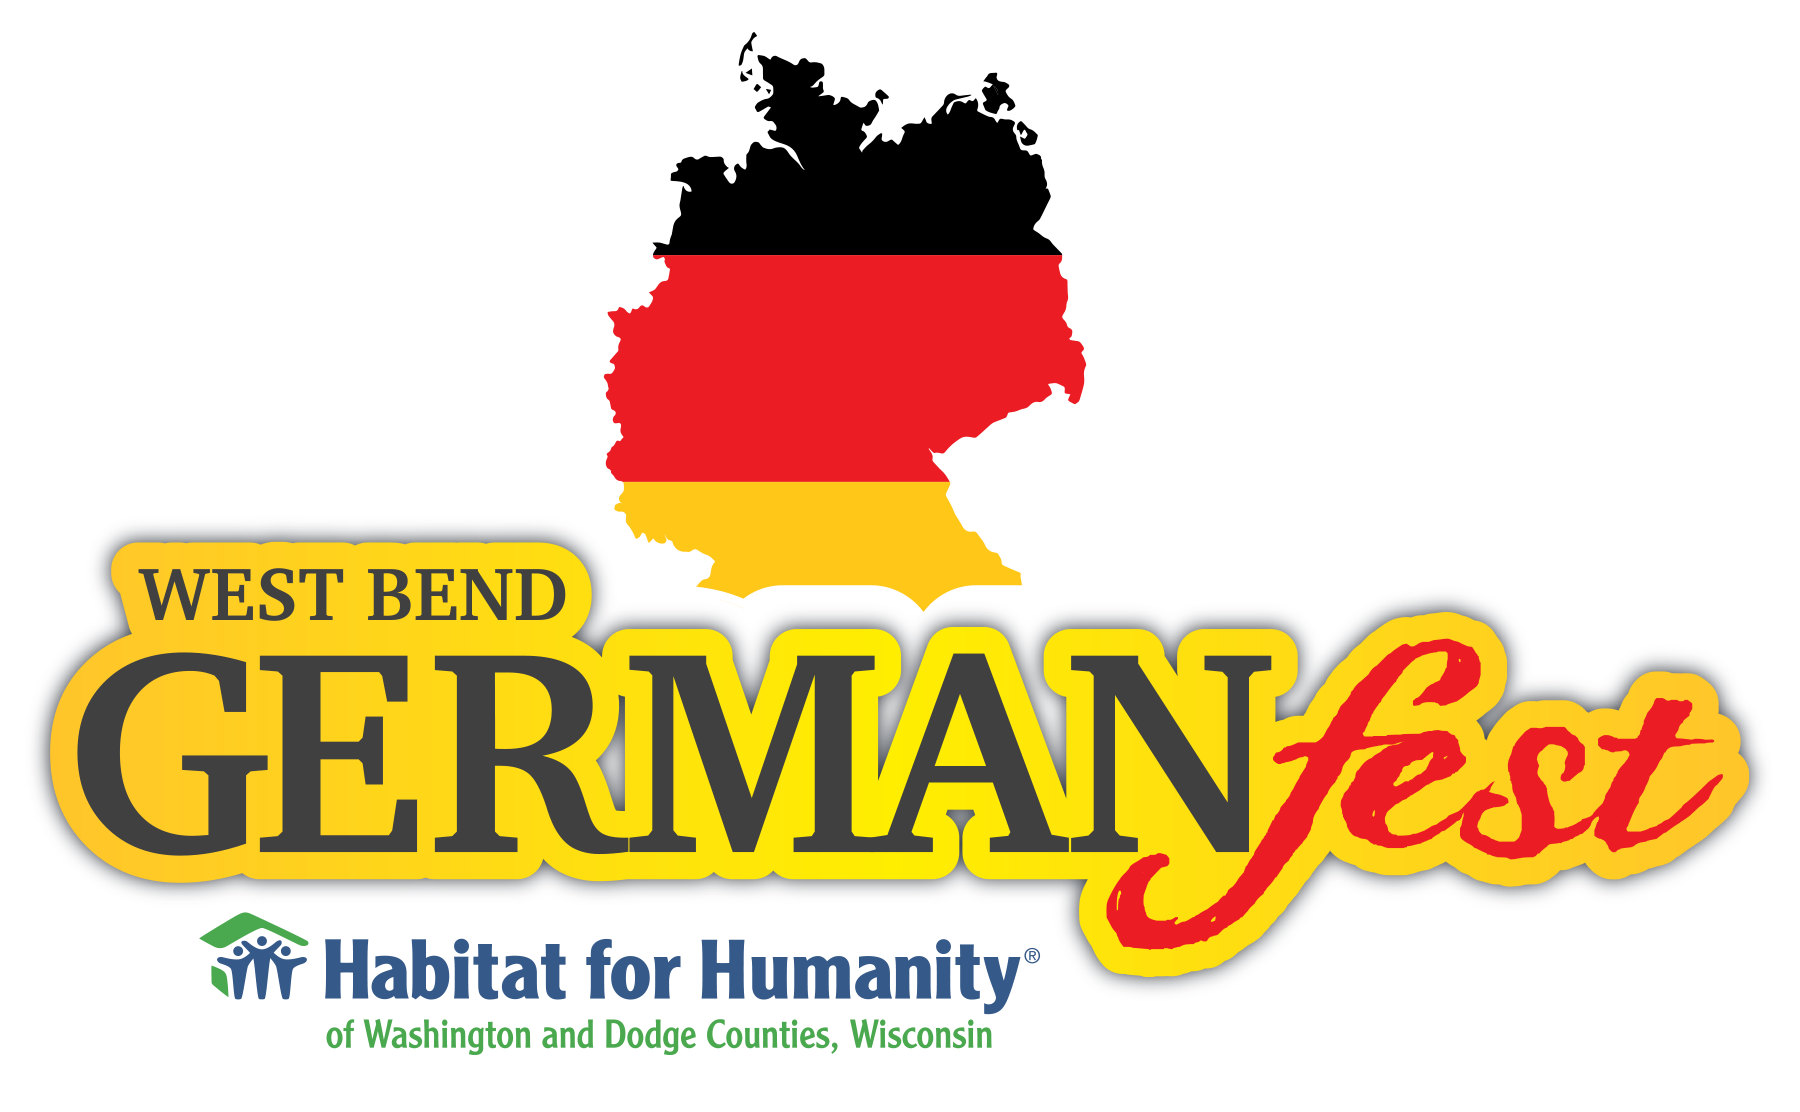 Germanfest of West Bend